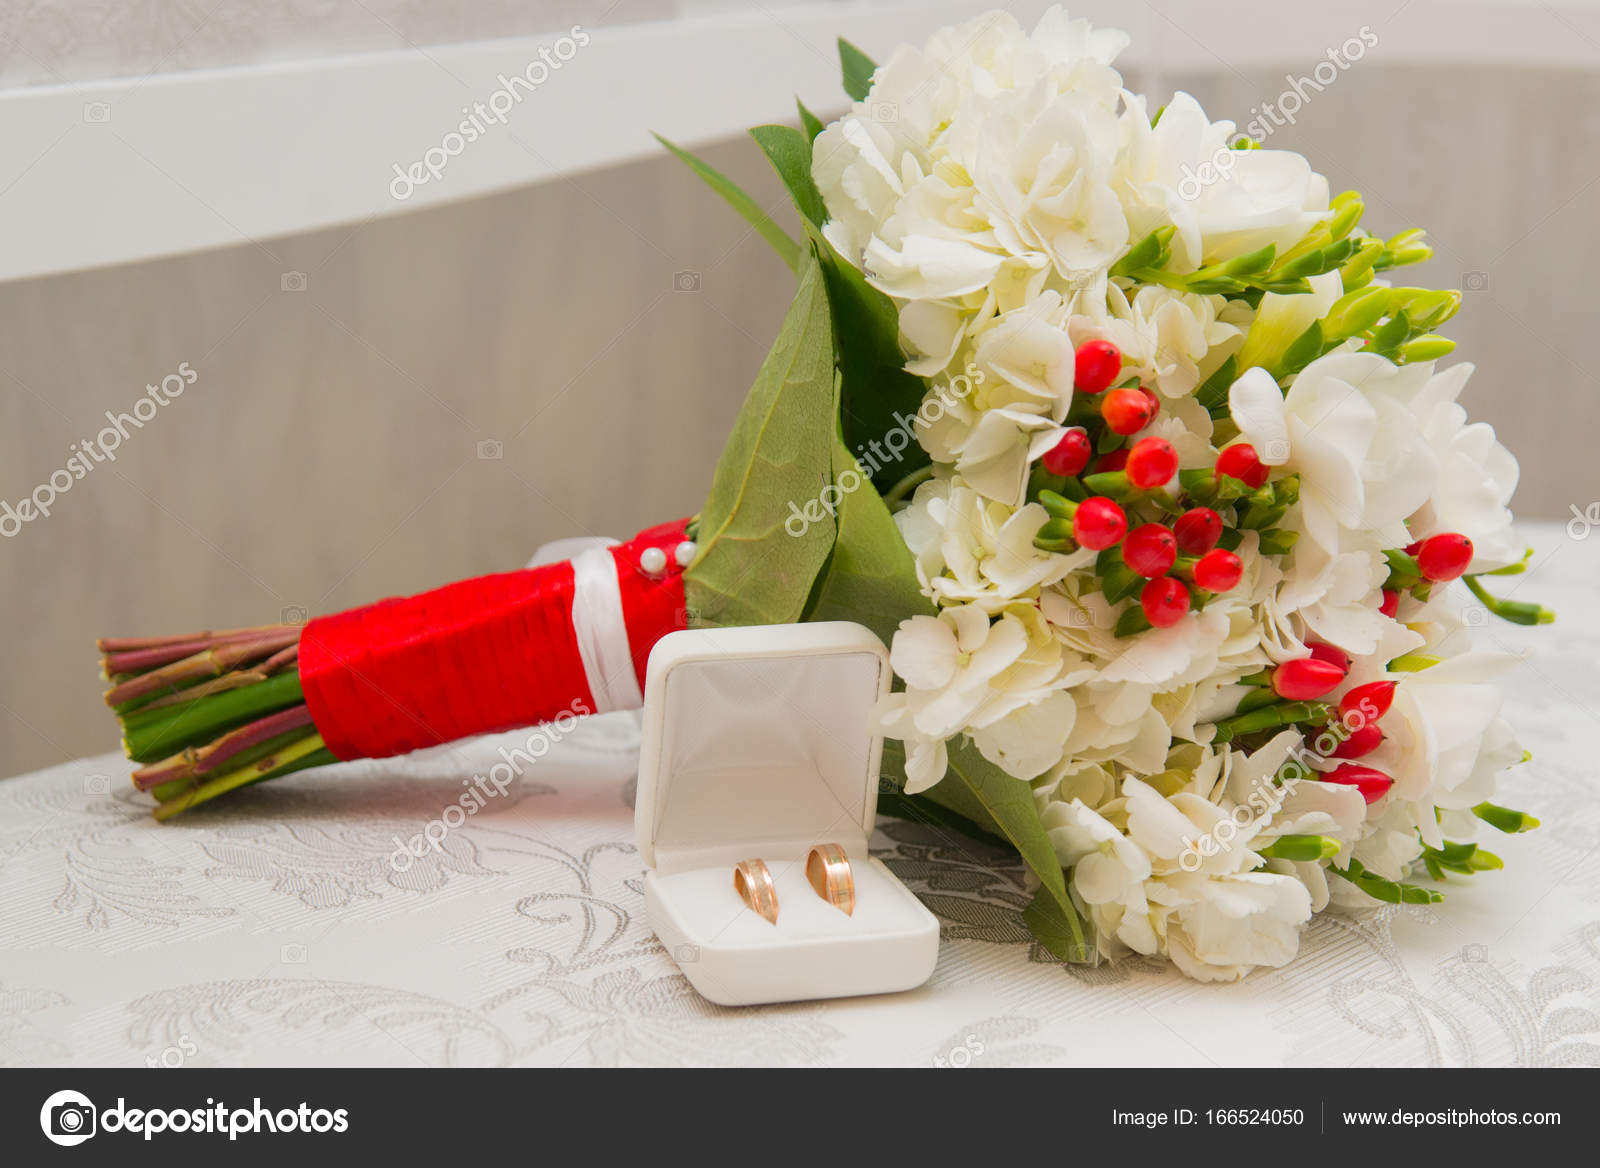 Two Golden Wedding Rings In White Box And Bouquet With White Flowers